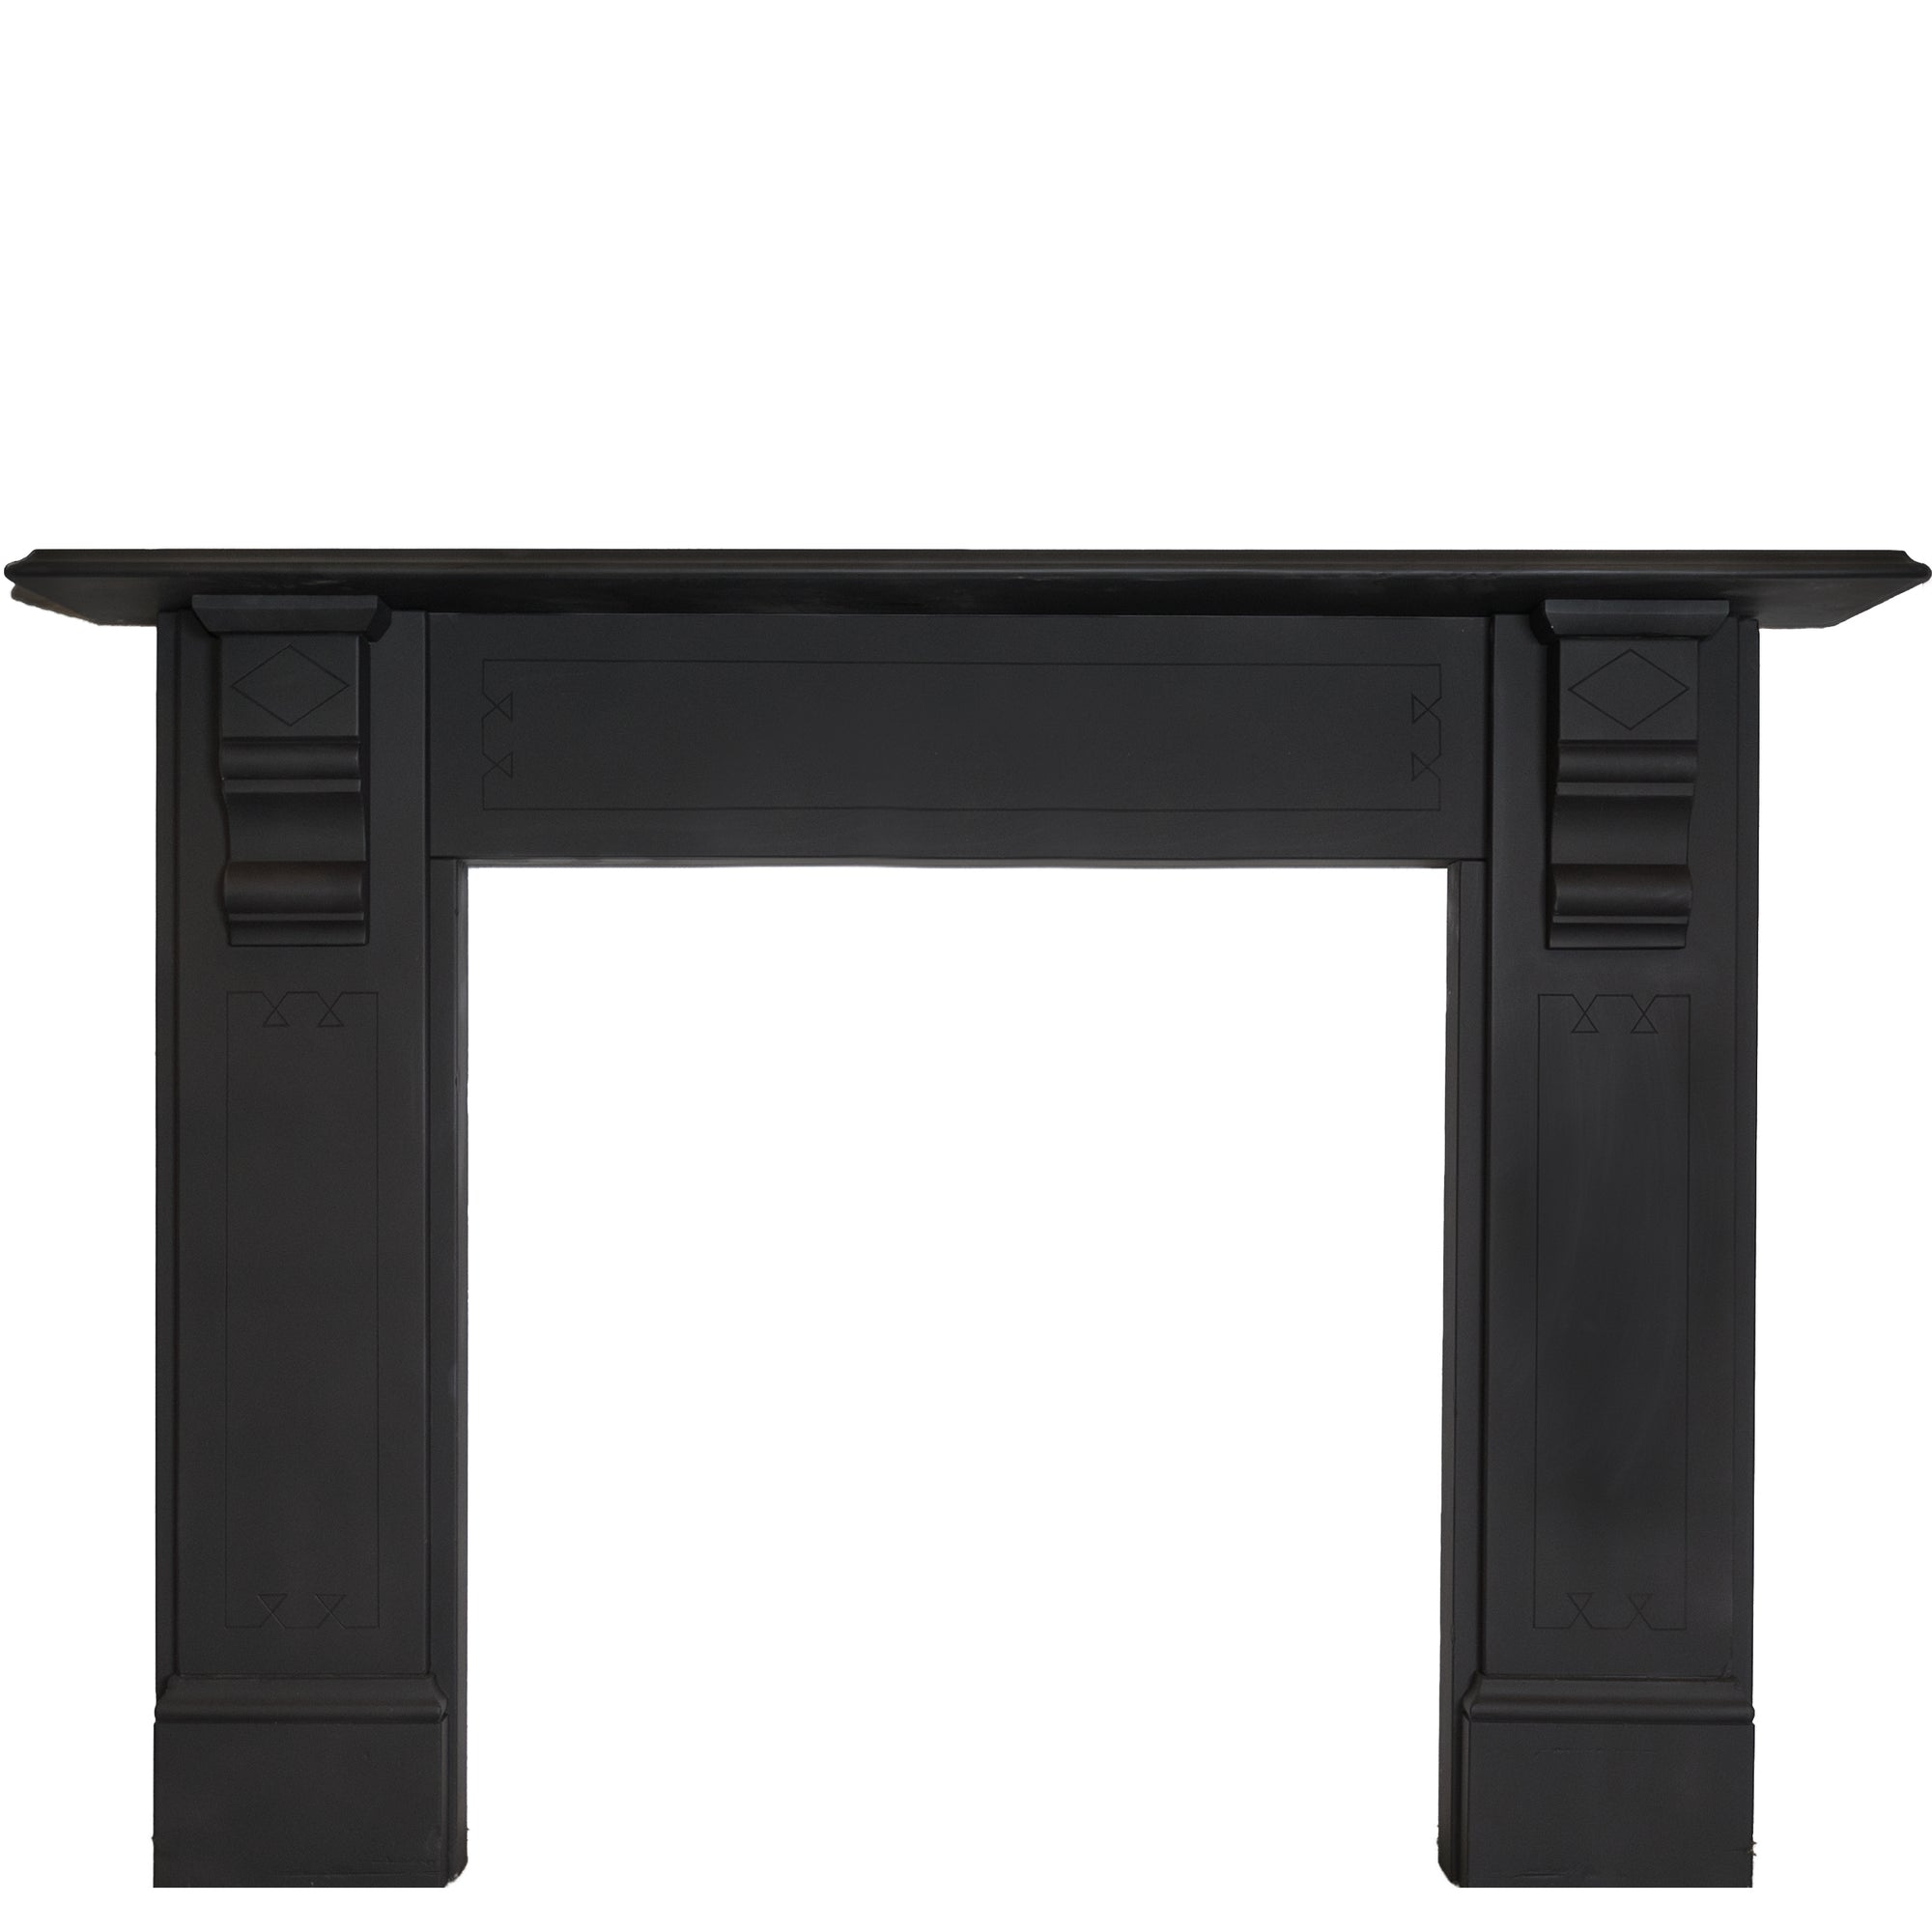 Antique Victorian Slate Fireplace Surround With Corbels | The Architectural Forum